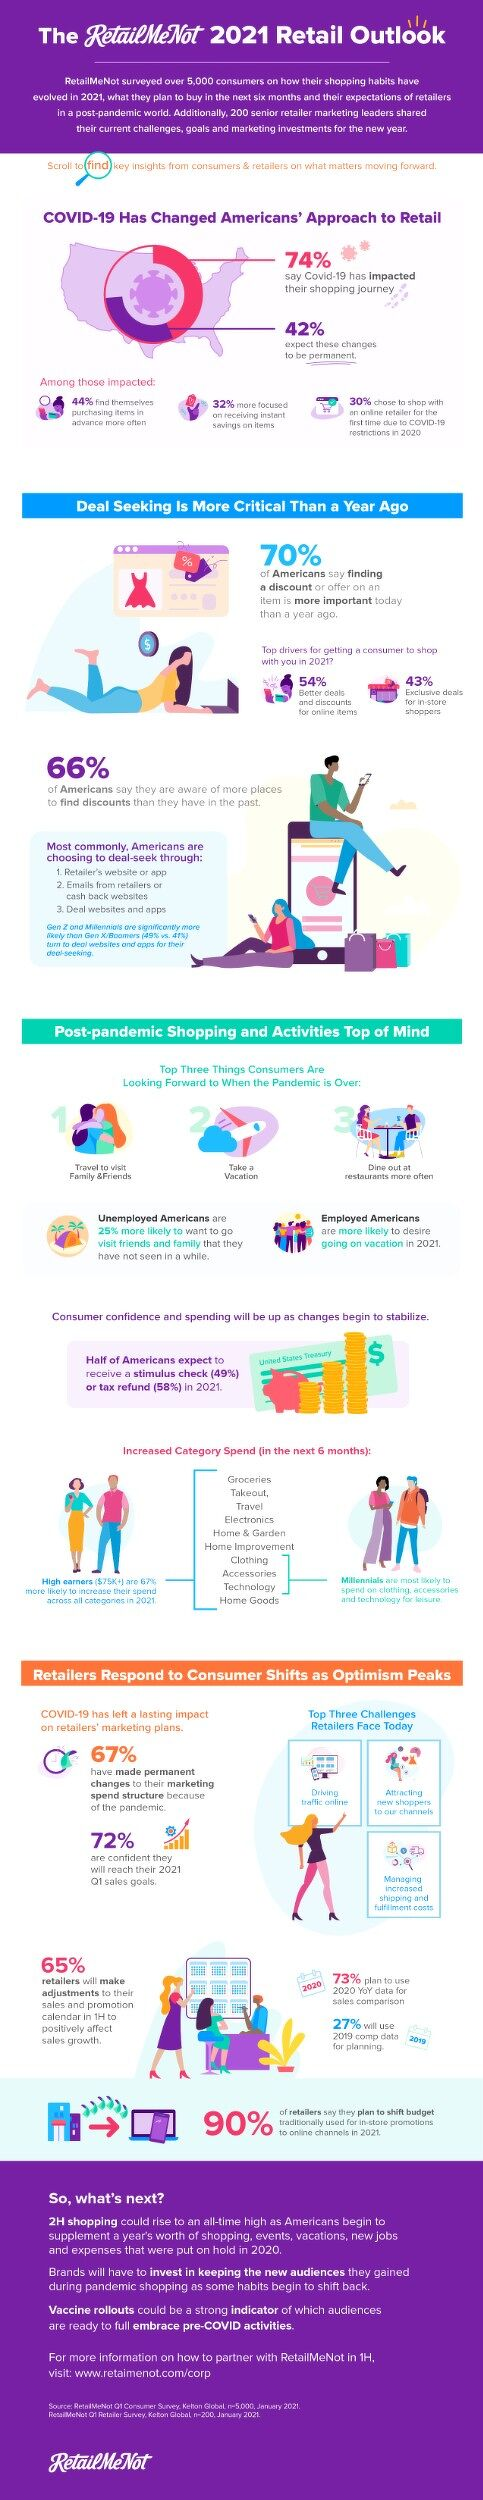 The 2021 Retail Outlook Infographic